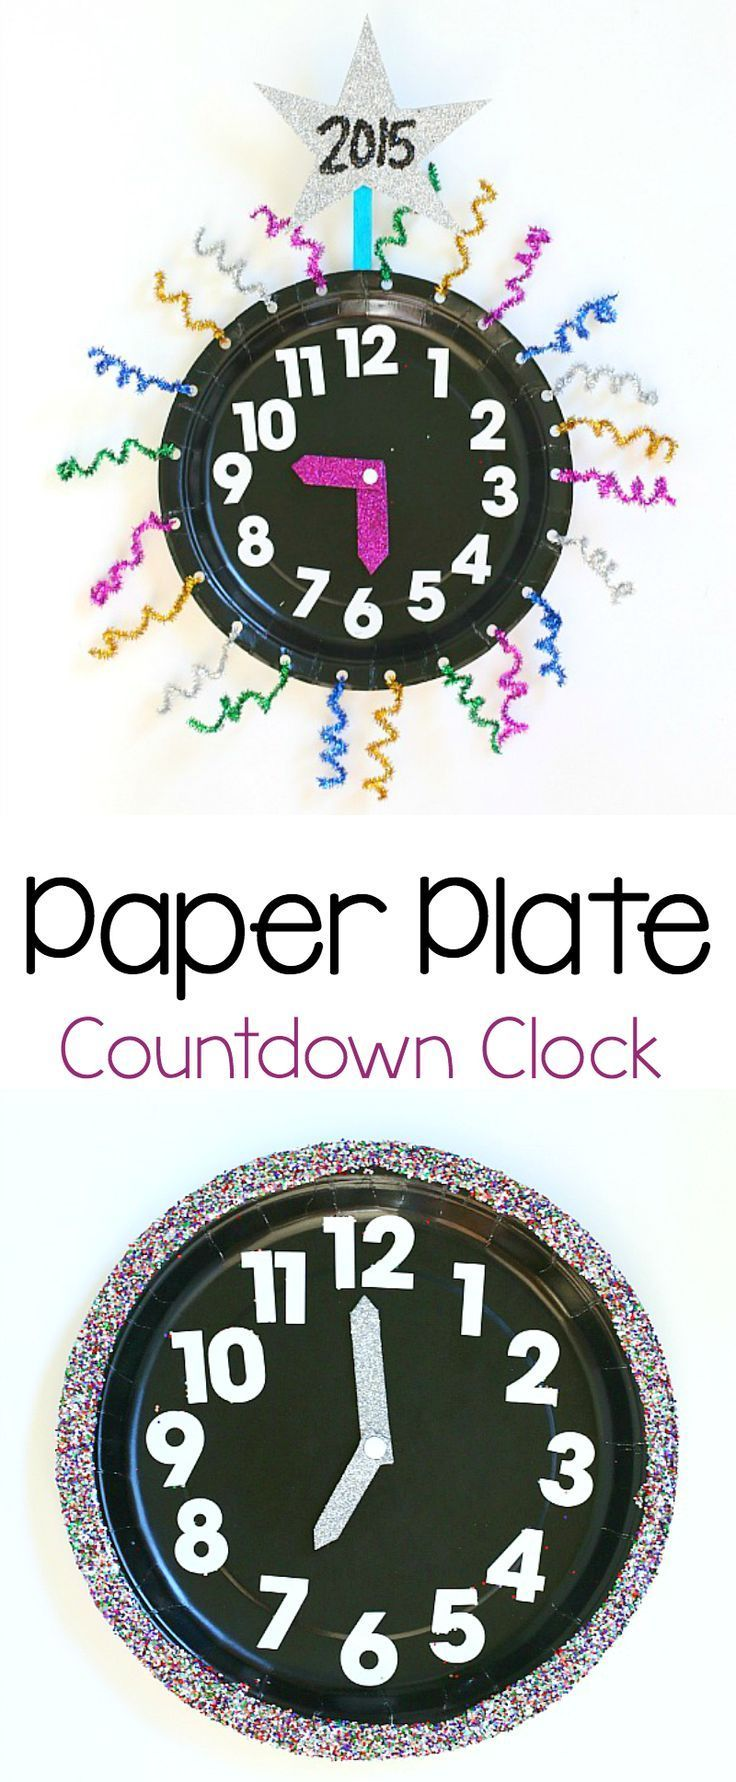 New Year's Eve with Kids: Countdown Clock Craft Using Paper Plates - Buggy and Buddy